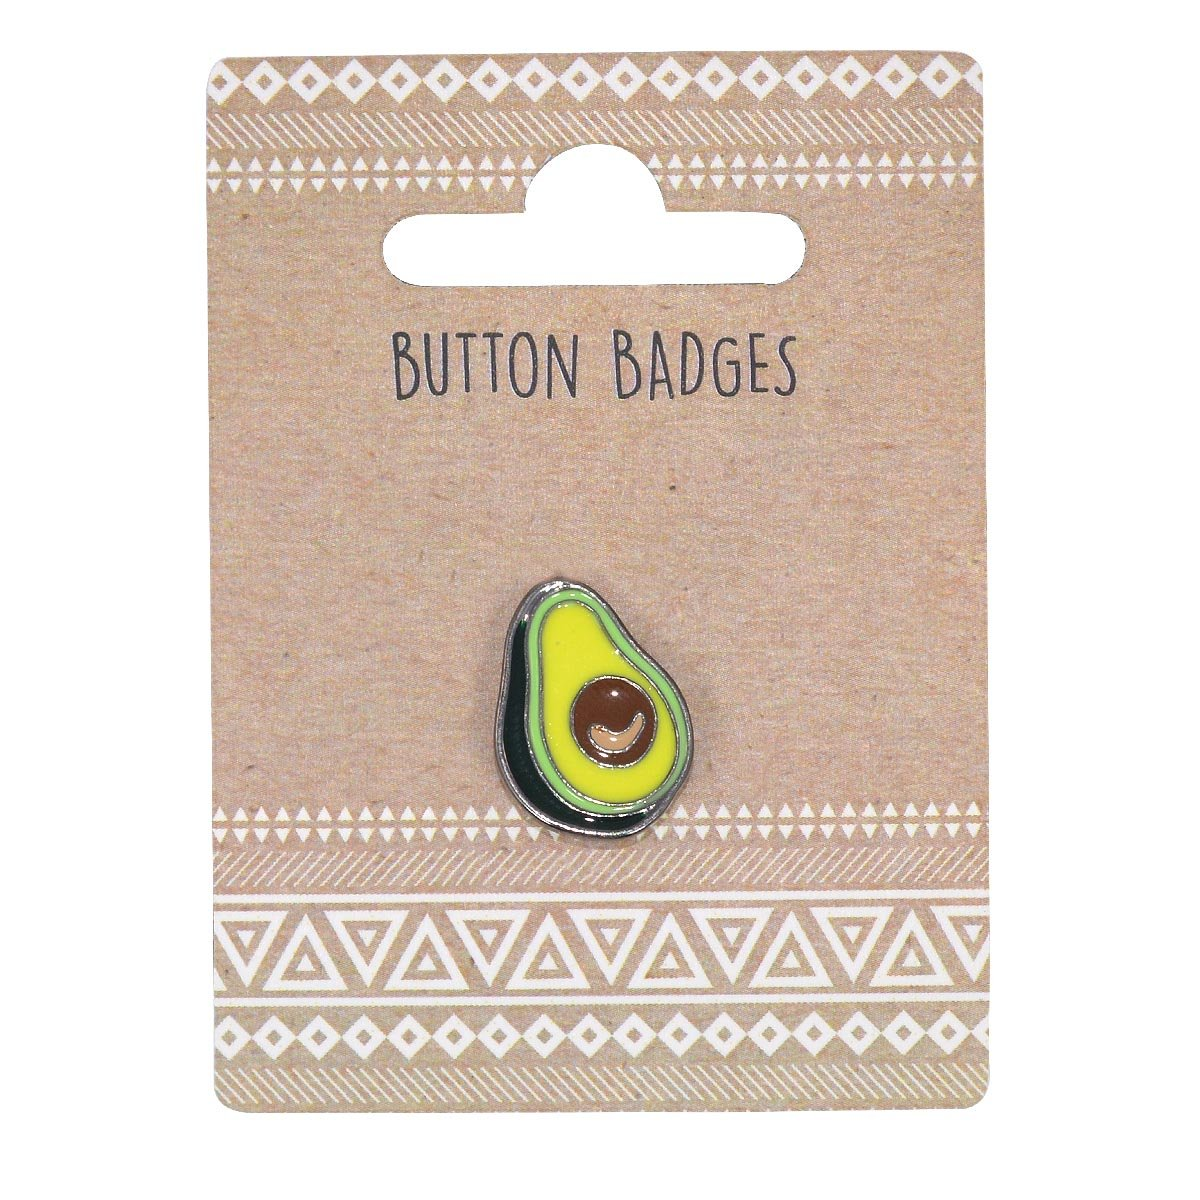 Xpressions Cute Fun Awesome Pin Badge Avocado